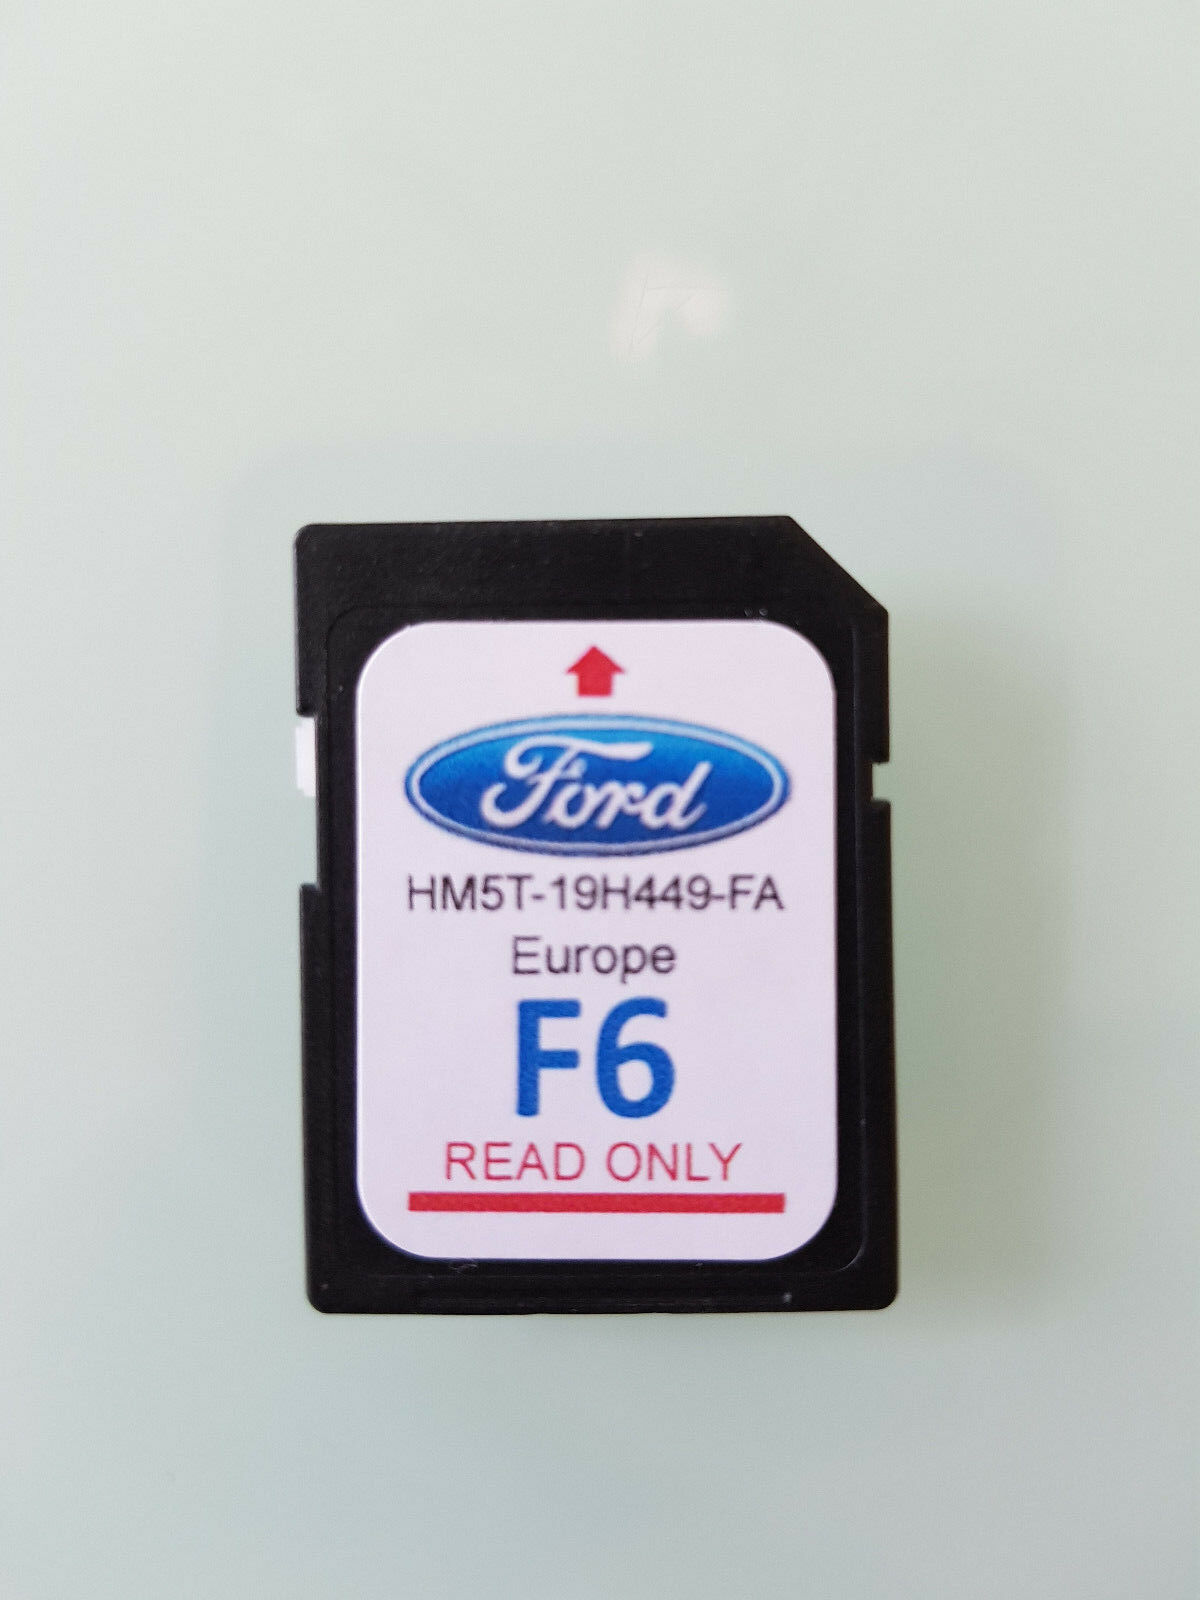 carte sd gps ford sync2 f6 europe 2017 hm5t 19h449 fa original sd card eur 60 00 picclick fr. Black Bedroom Furniture Sets. Home Design Ideas